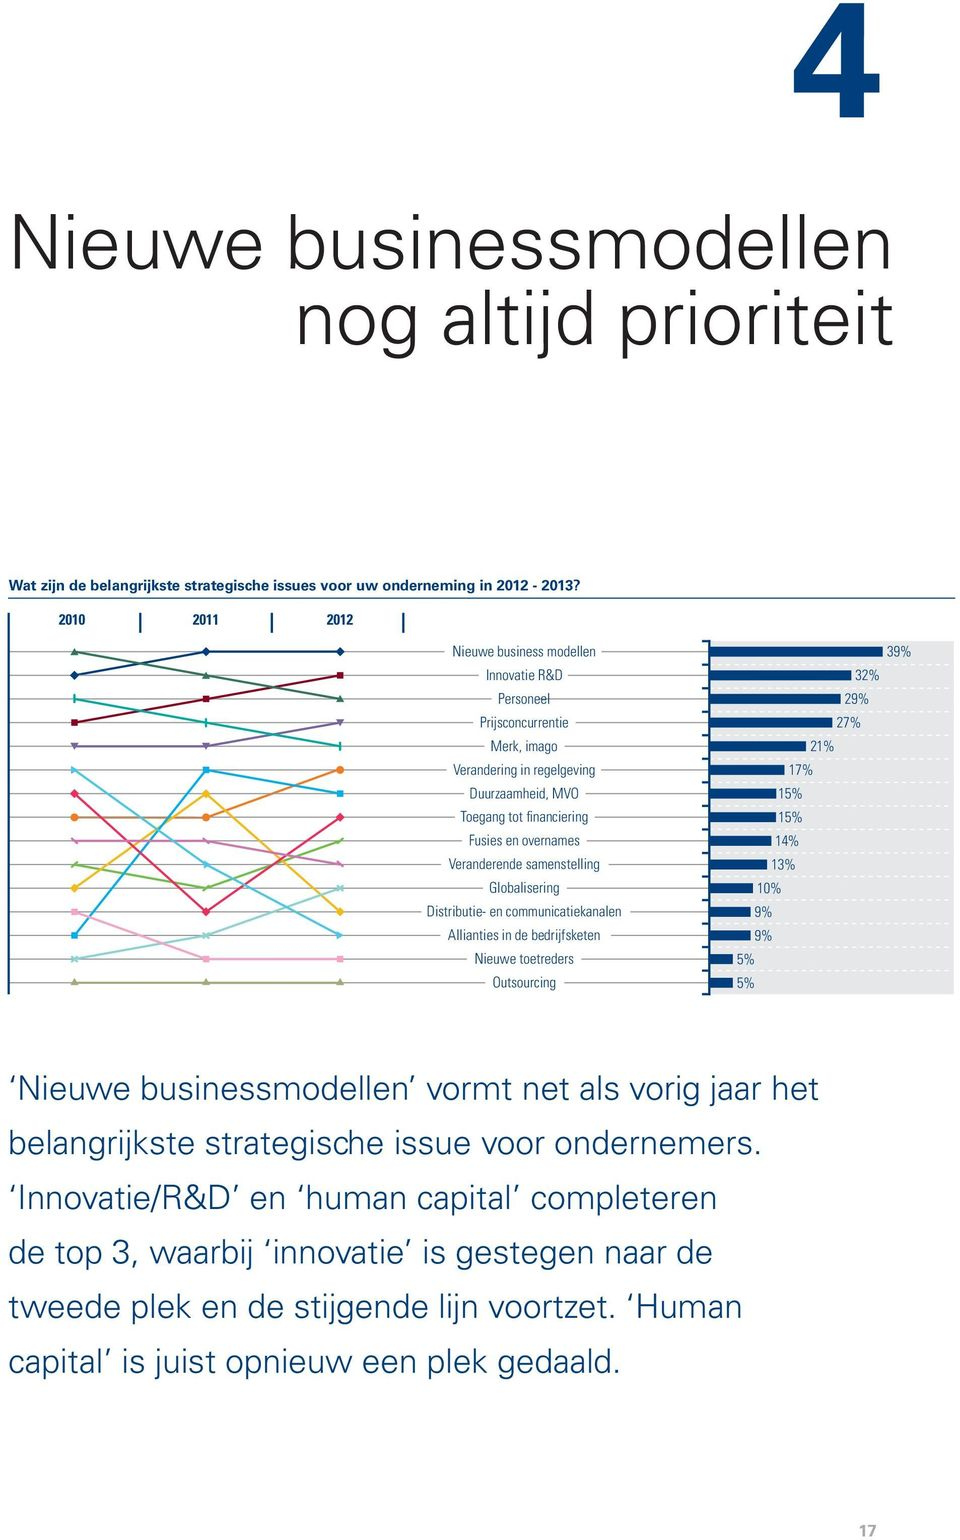 samenstelling Globalisering Distributie- en communicatiekanalen Allianties in de bedrijfsketen Nieuwe toetreders Outsourcing 39% 32% 29% 27% 21% 17% 15% 15% 14% 13% 10% 9% 9% 5% 5% Nieuwe